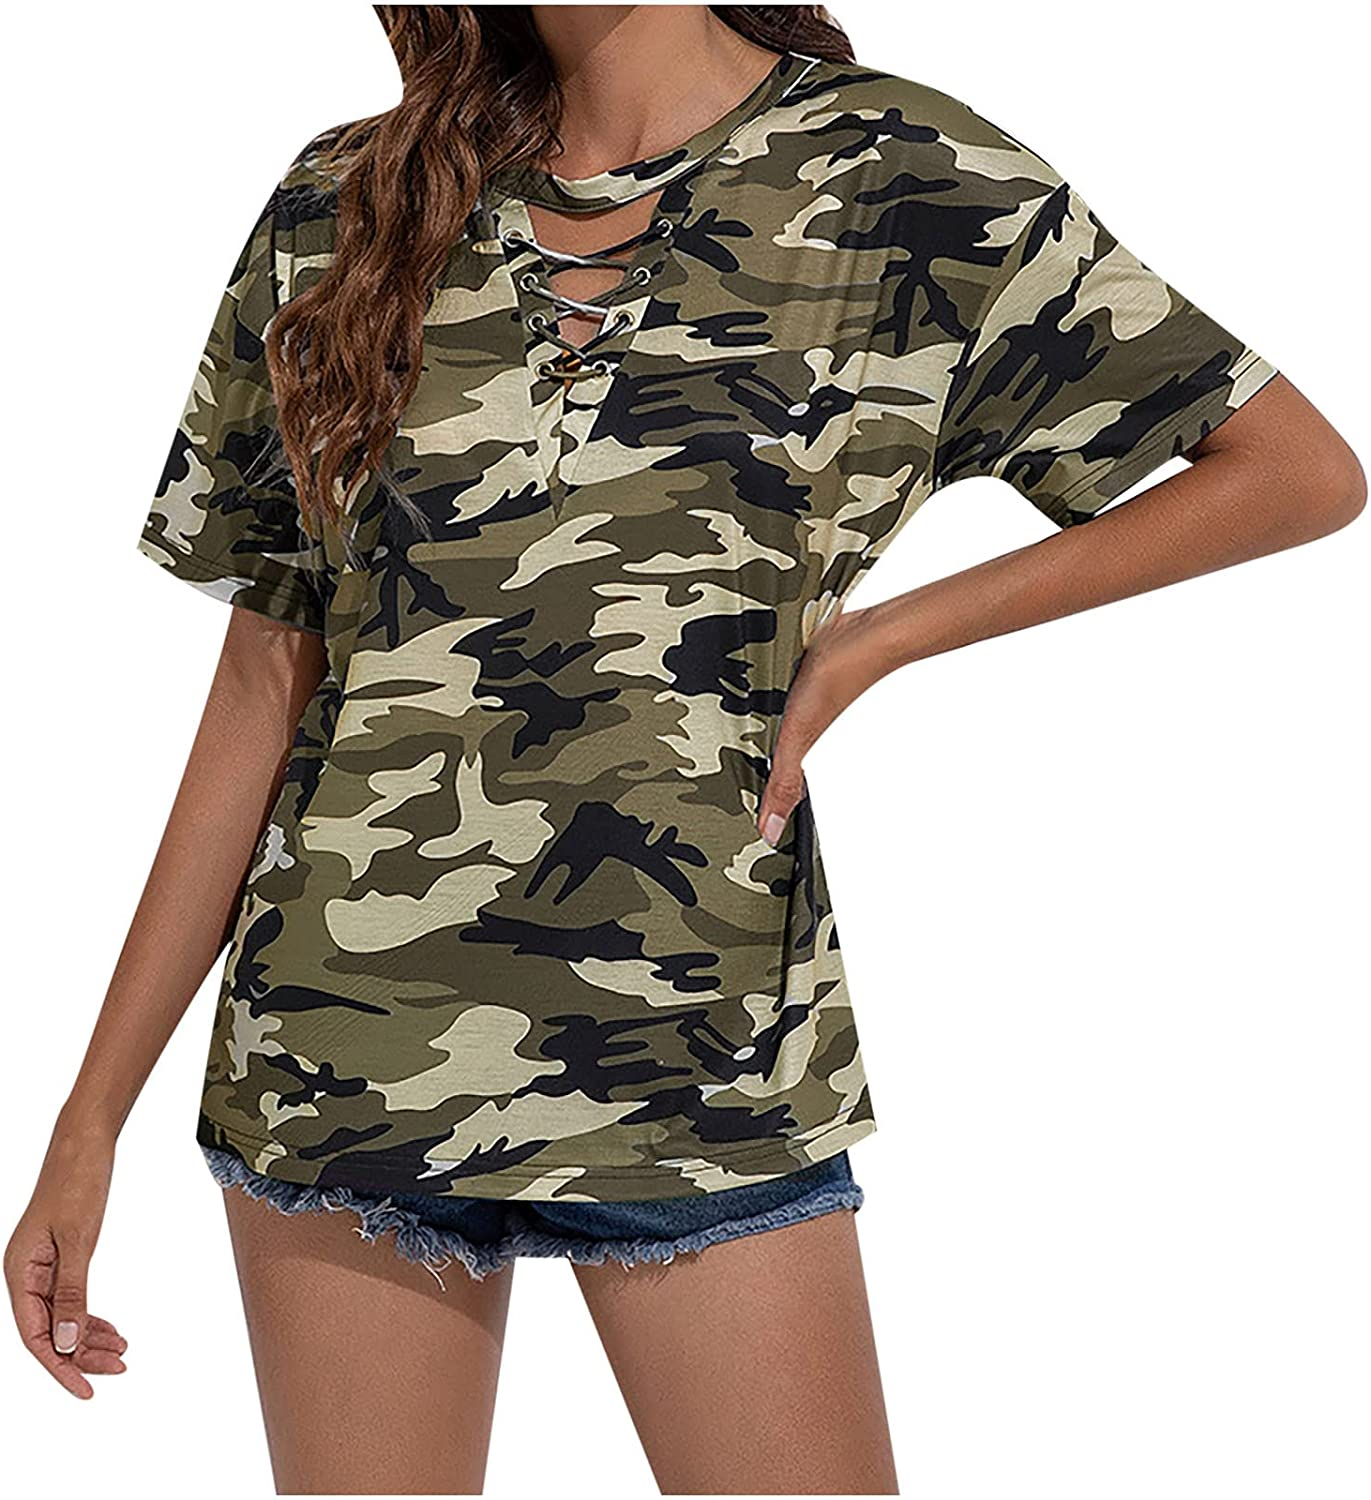 TARIENDY Camouflage Tie Dye Shirt for Women Bandage V Neck Tops Summer Short Sleeve Blouse Loose Comfy Tees